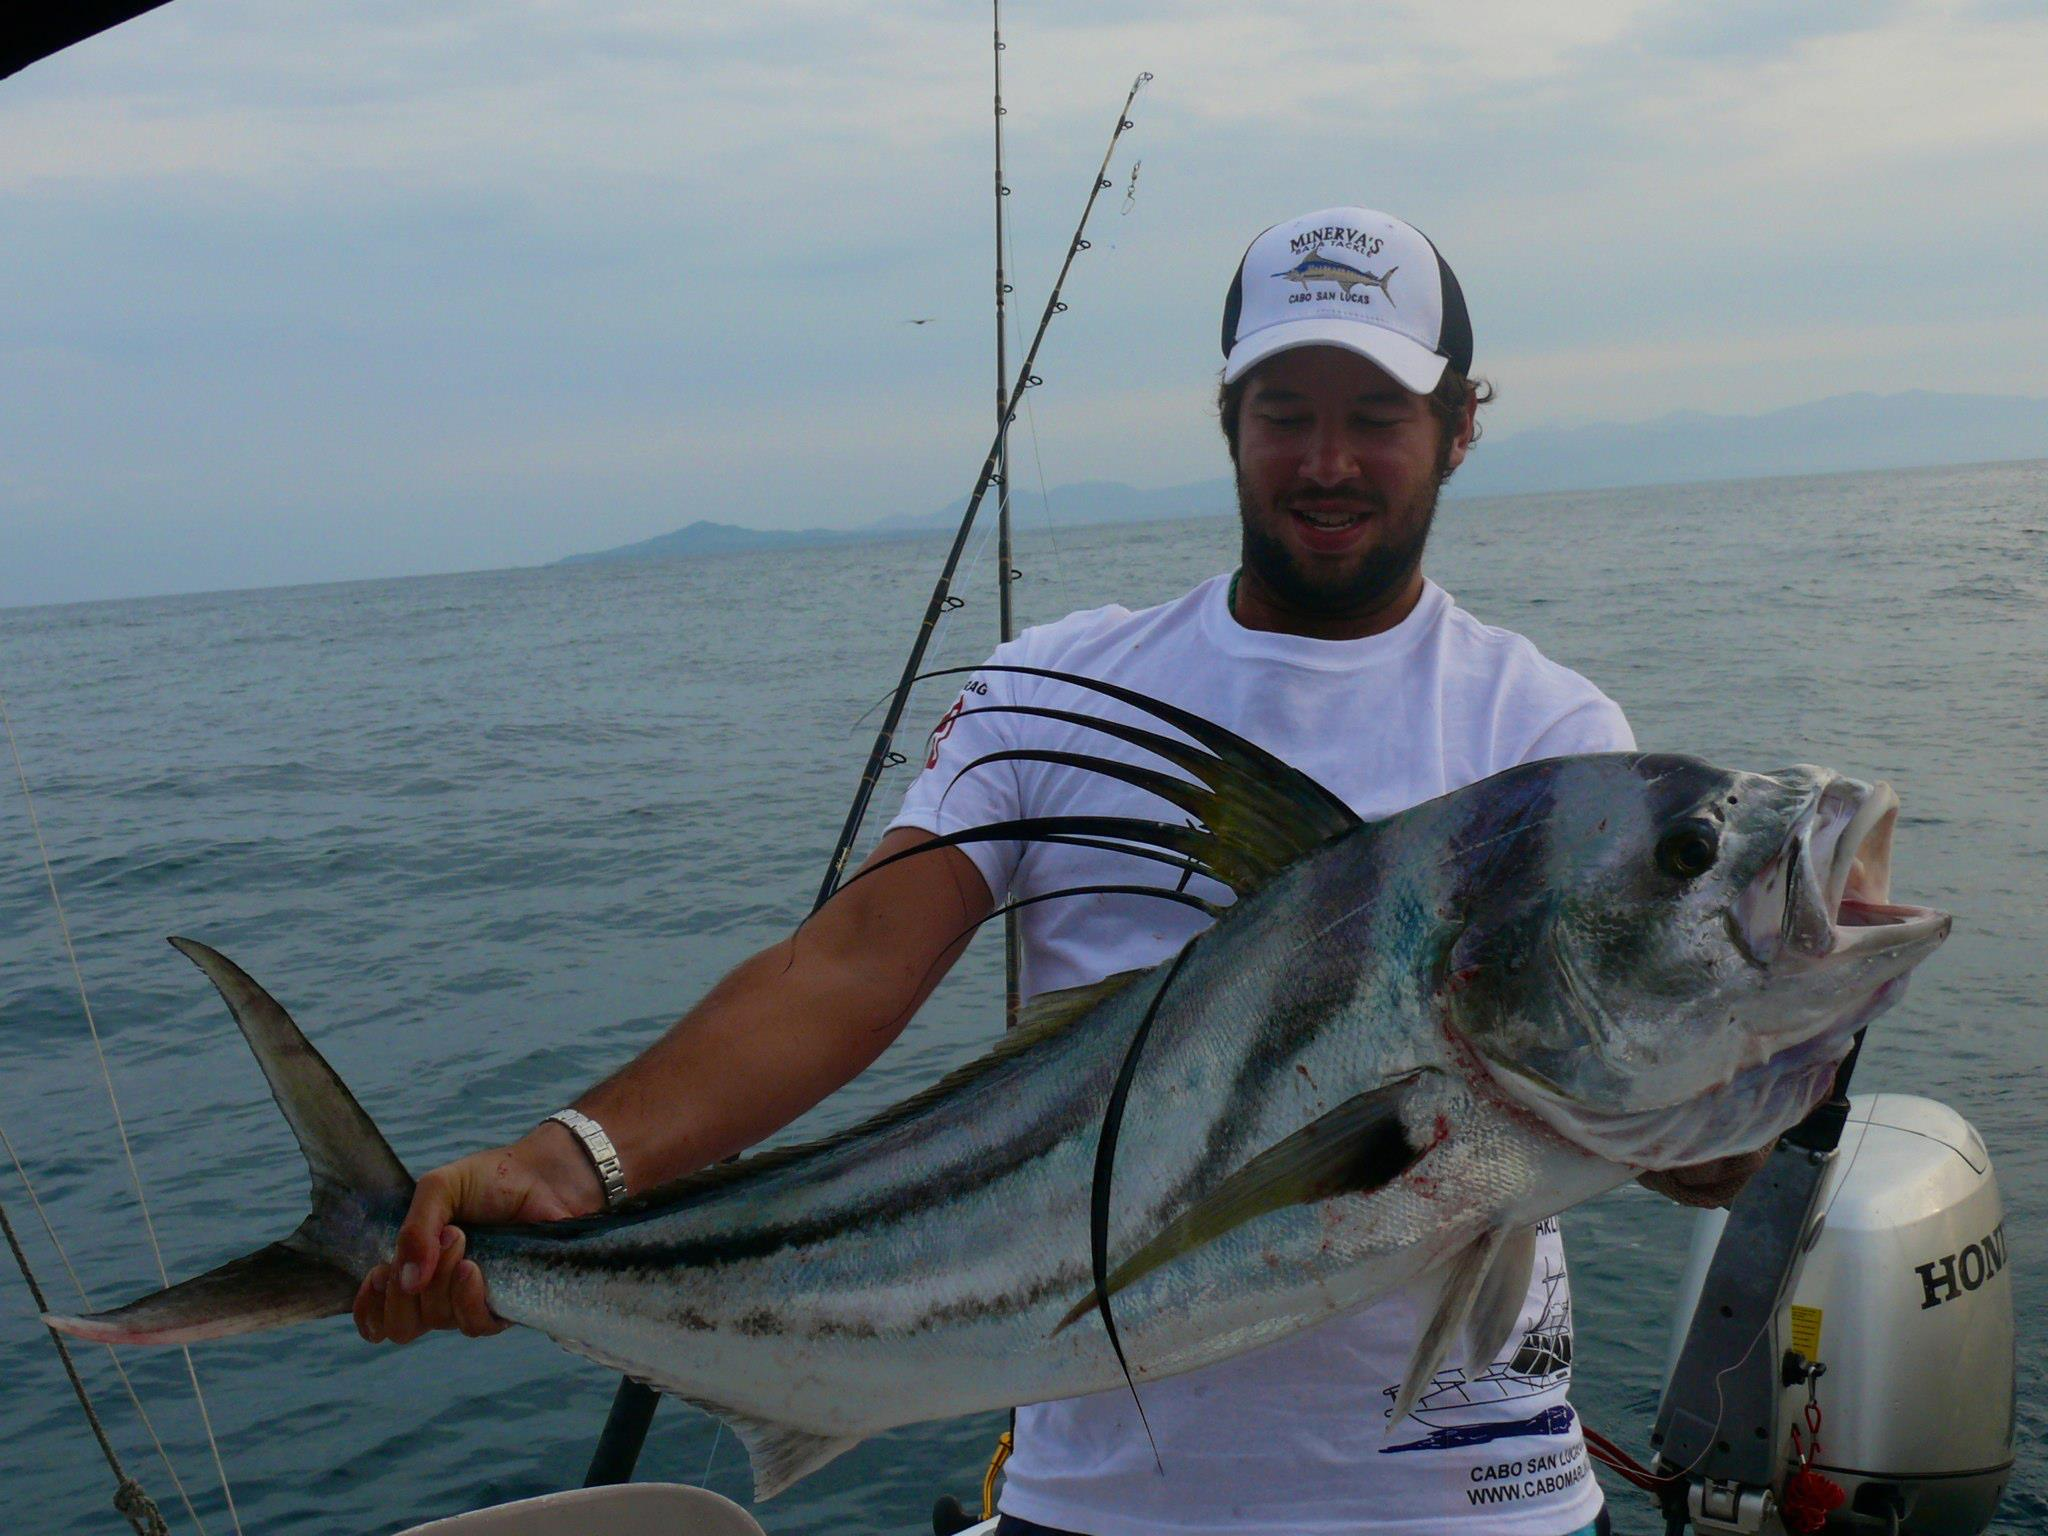 Puerto vallarta fishing report september my marlin for Puerto vallarta fishing